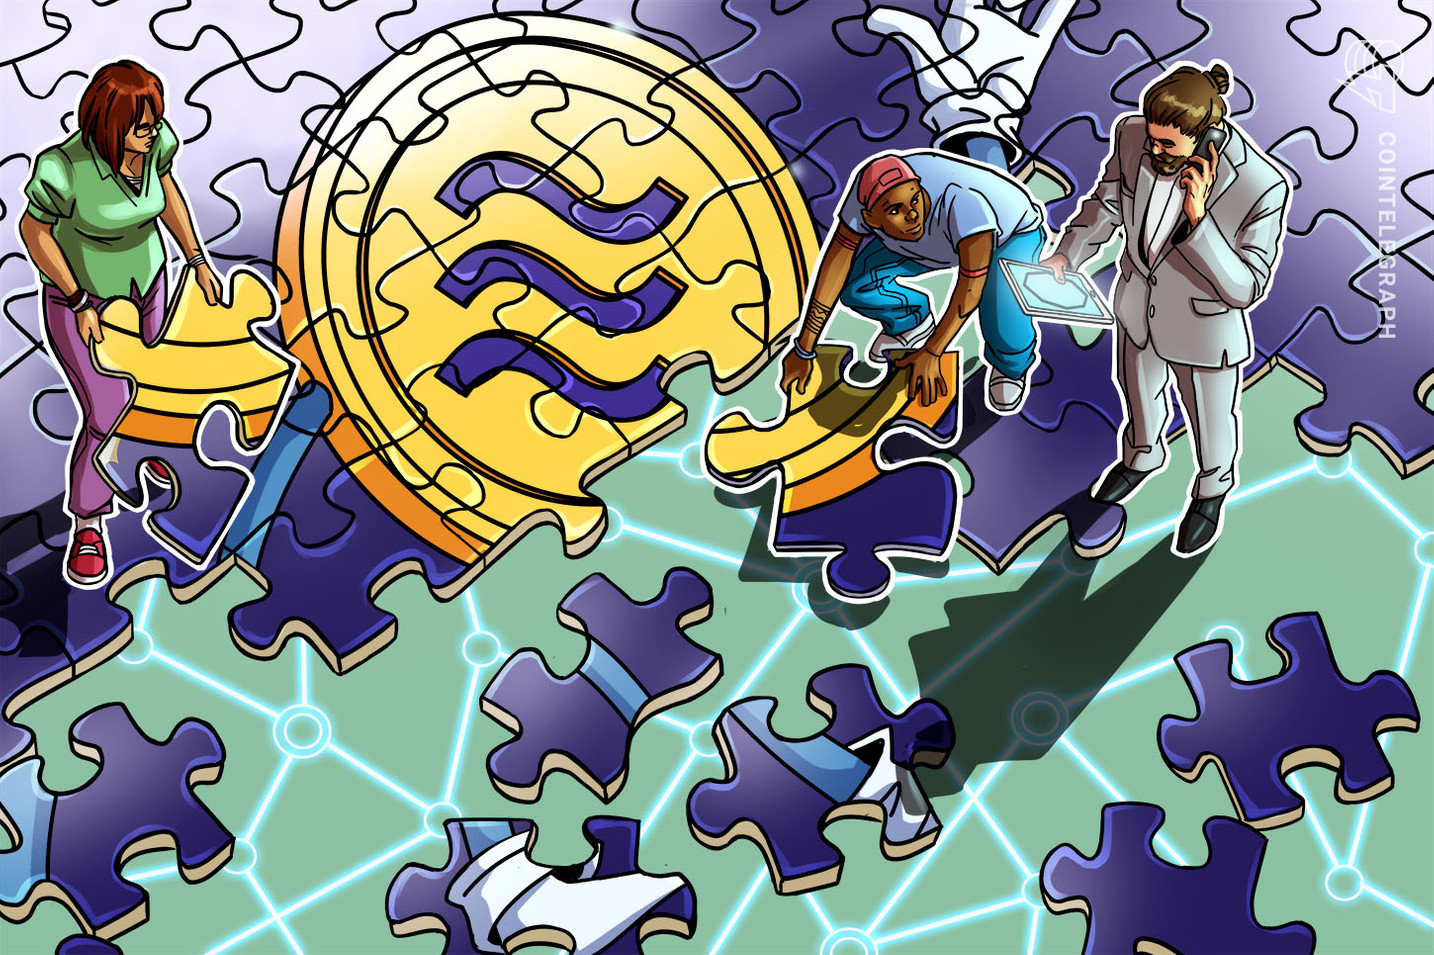 Facebook's Libra stablecoin is expected to be launched in January 2021